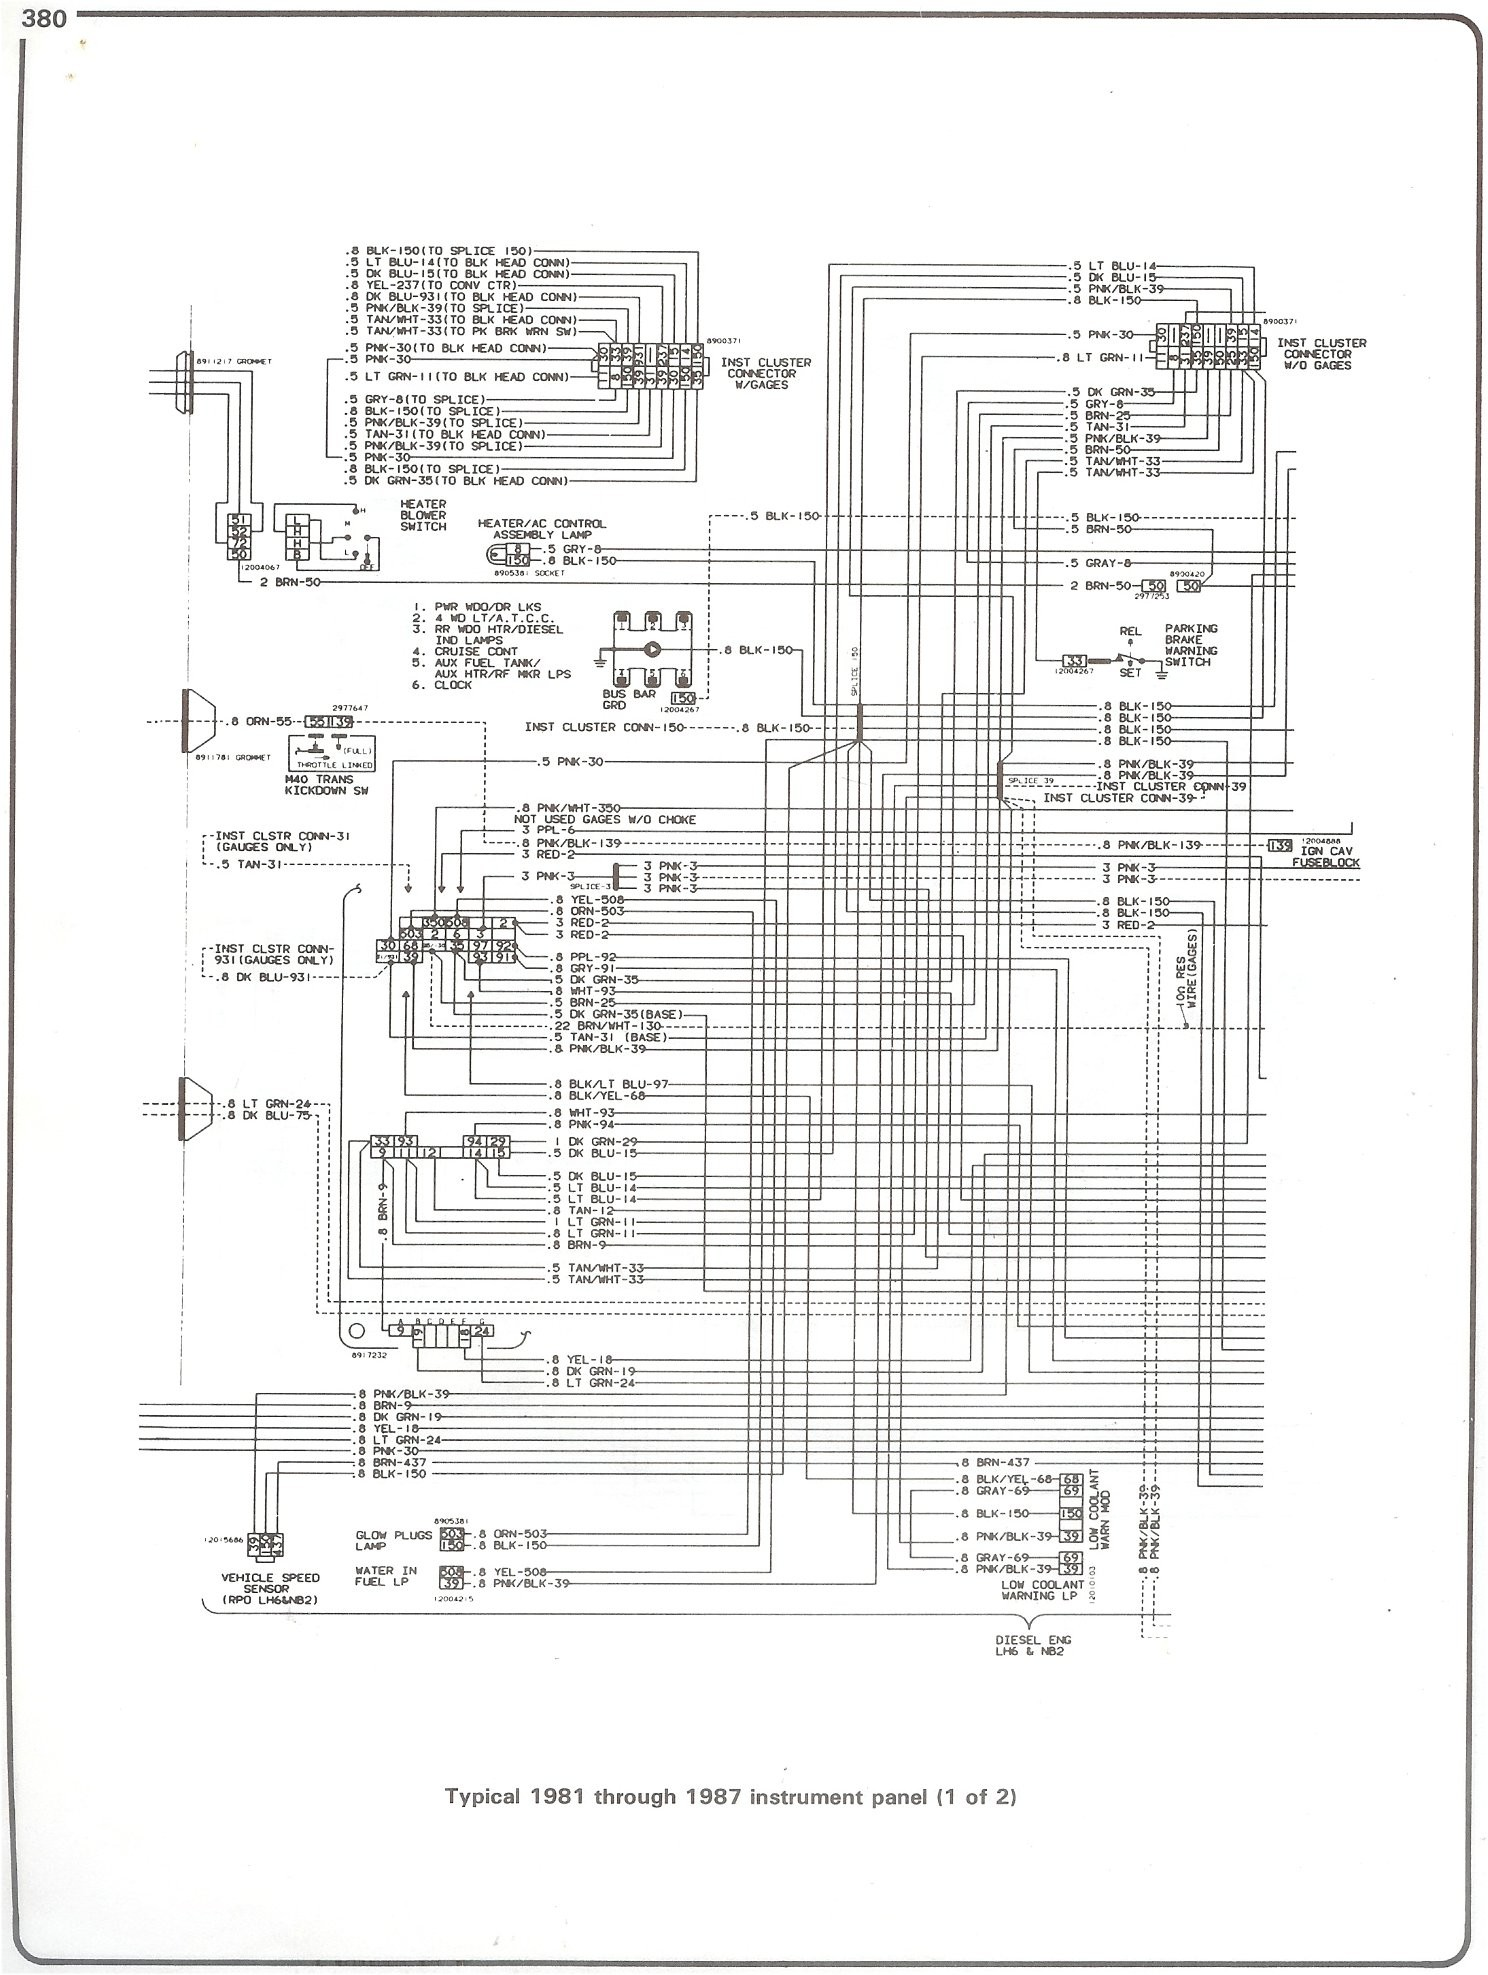 Wiring A 1985 Chevy Stering Coloumn Diagram] 72 Chevy Headlight Wiring Diagram Full Version Hd Of Wiring A 1985 Chevy Stering Coloumn